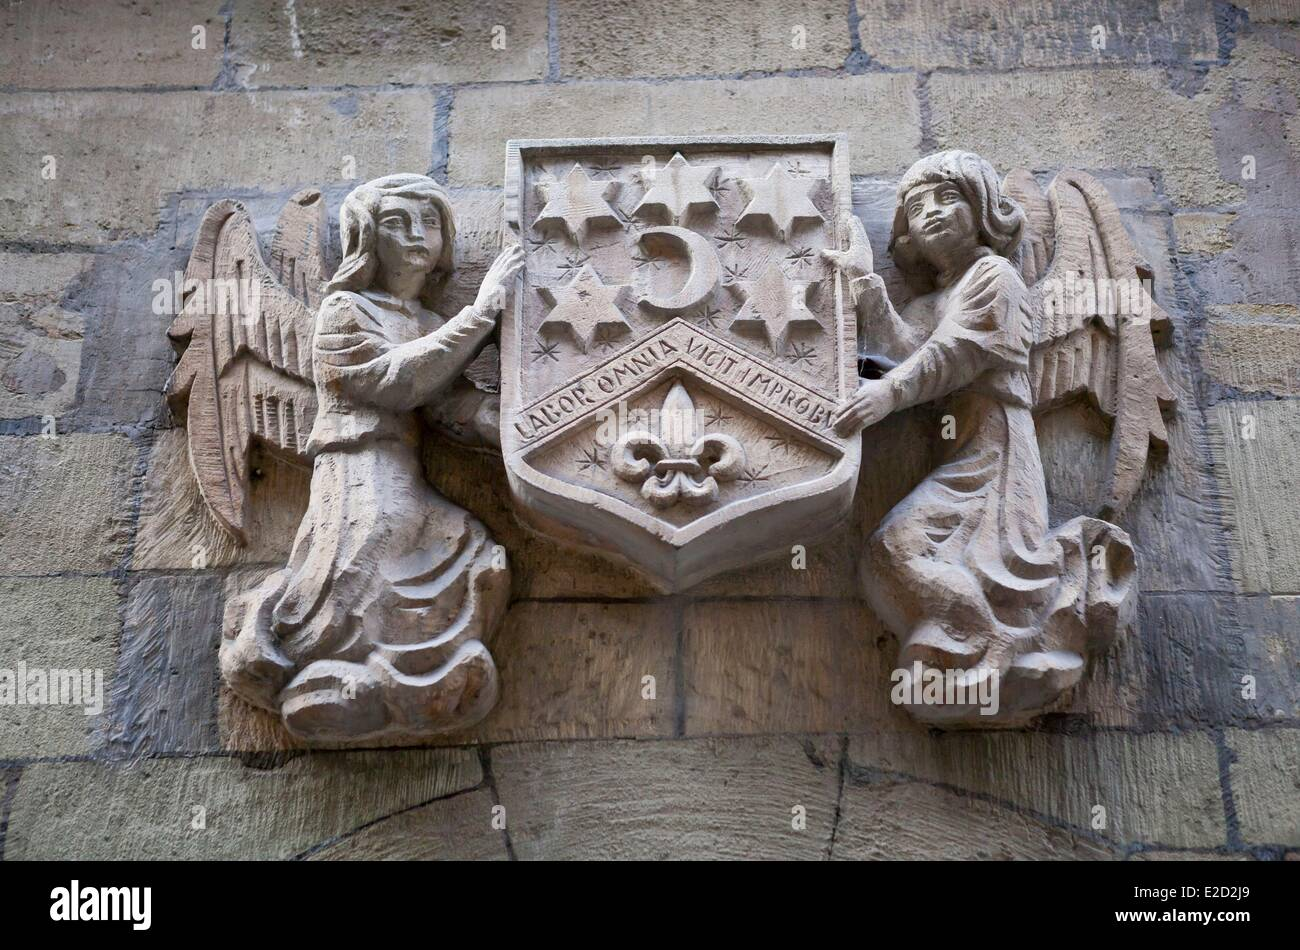 Switzerland Geneva Old Town bas-relief on a wall - Stock Image